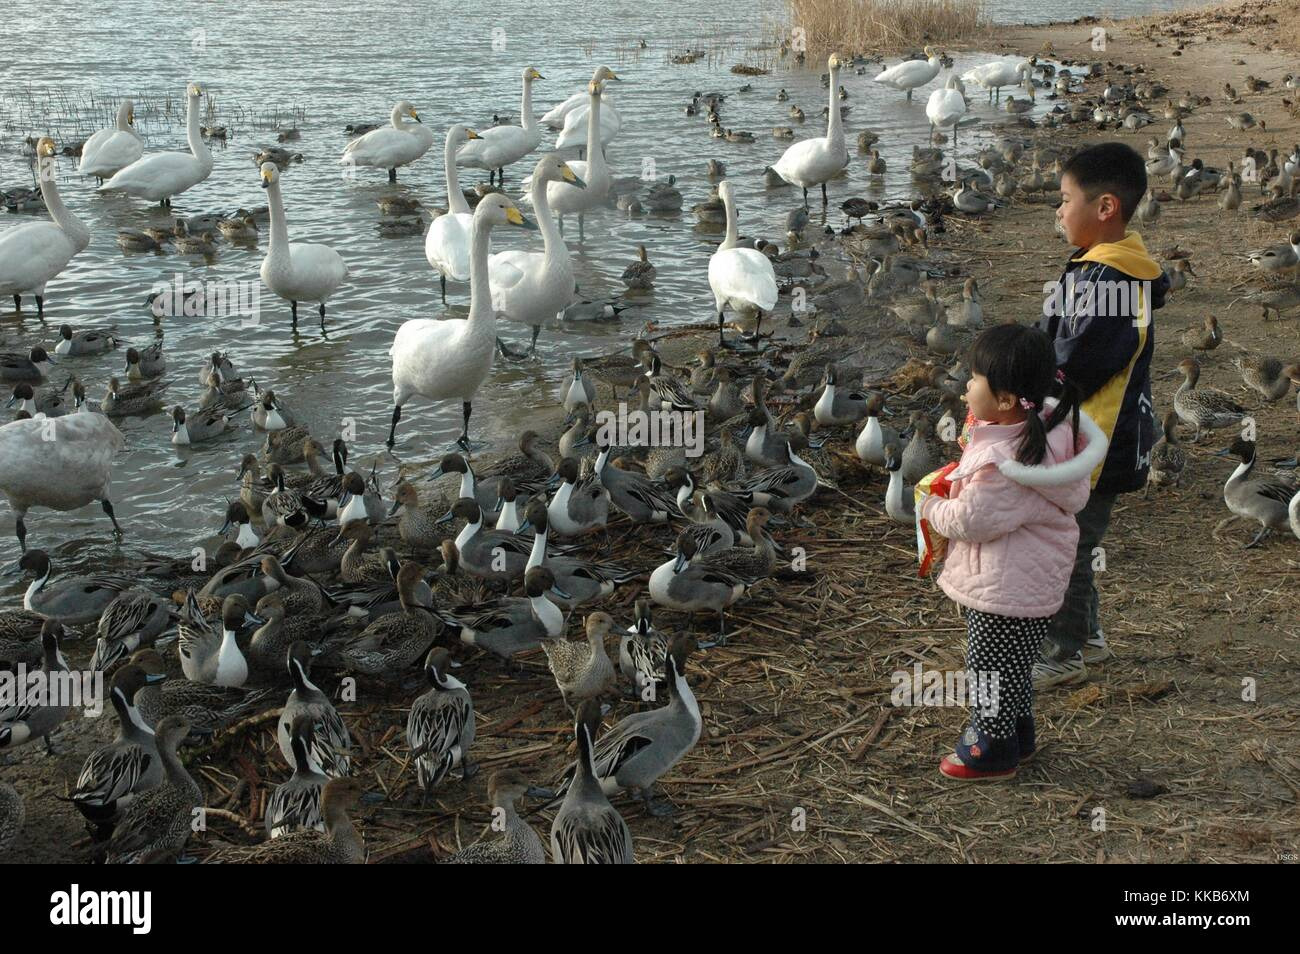 Two young children standing among waterfowl at the edge of a body of water. Image Courtesy John Pearce/USGS. 2007. - Stock Image